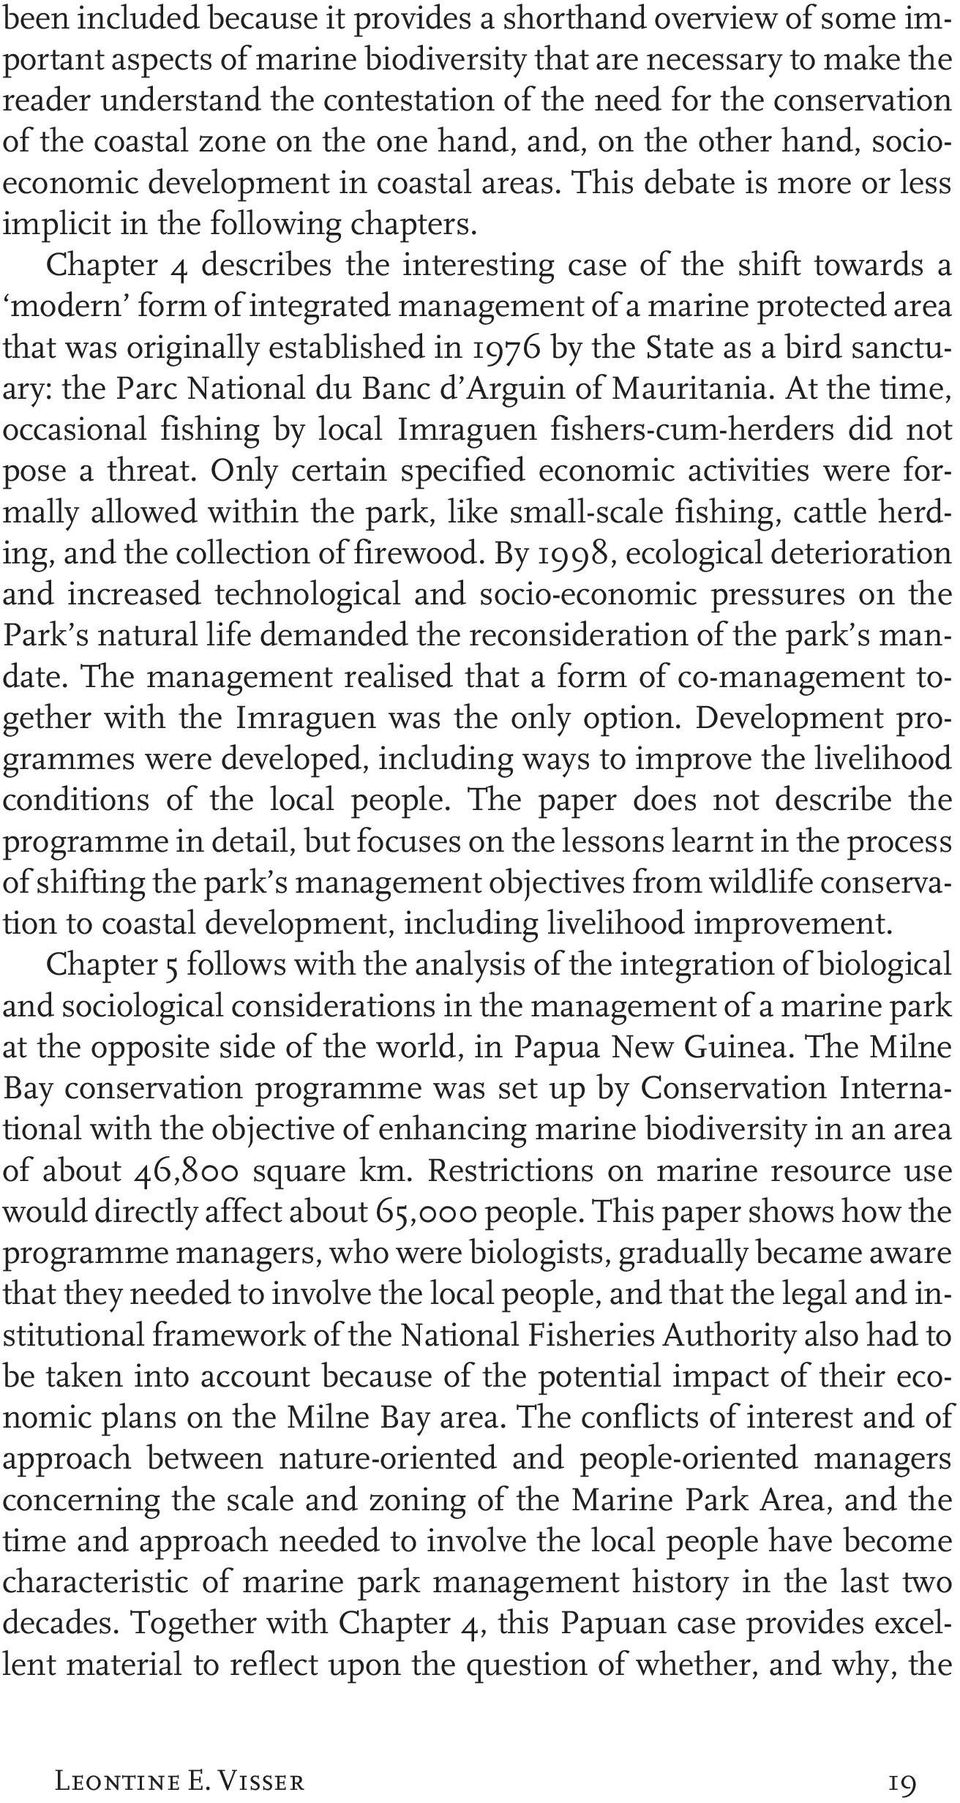 Chapter 4 describes the interesting case of the shift towards a modern form of integrated management of a marine protected area that was originally established in 1976 by the State as a bird